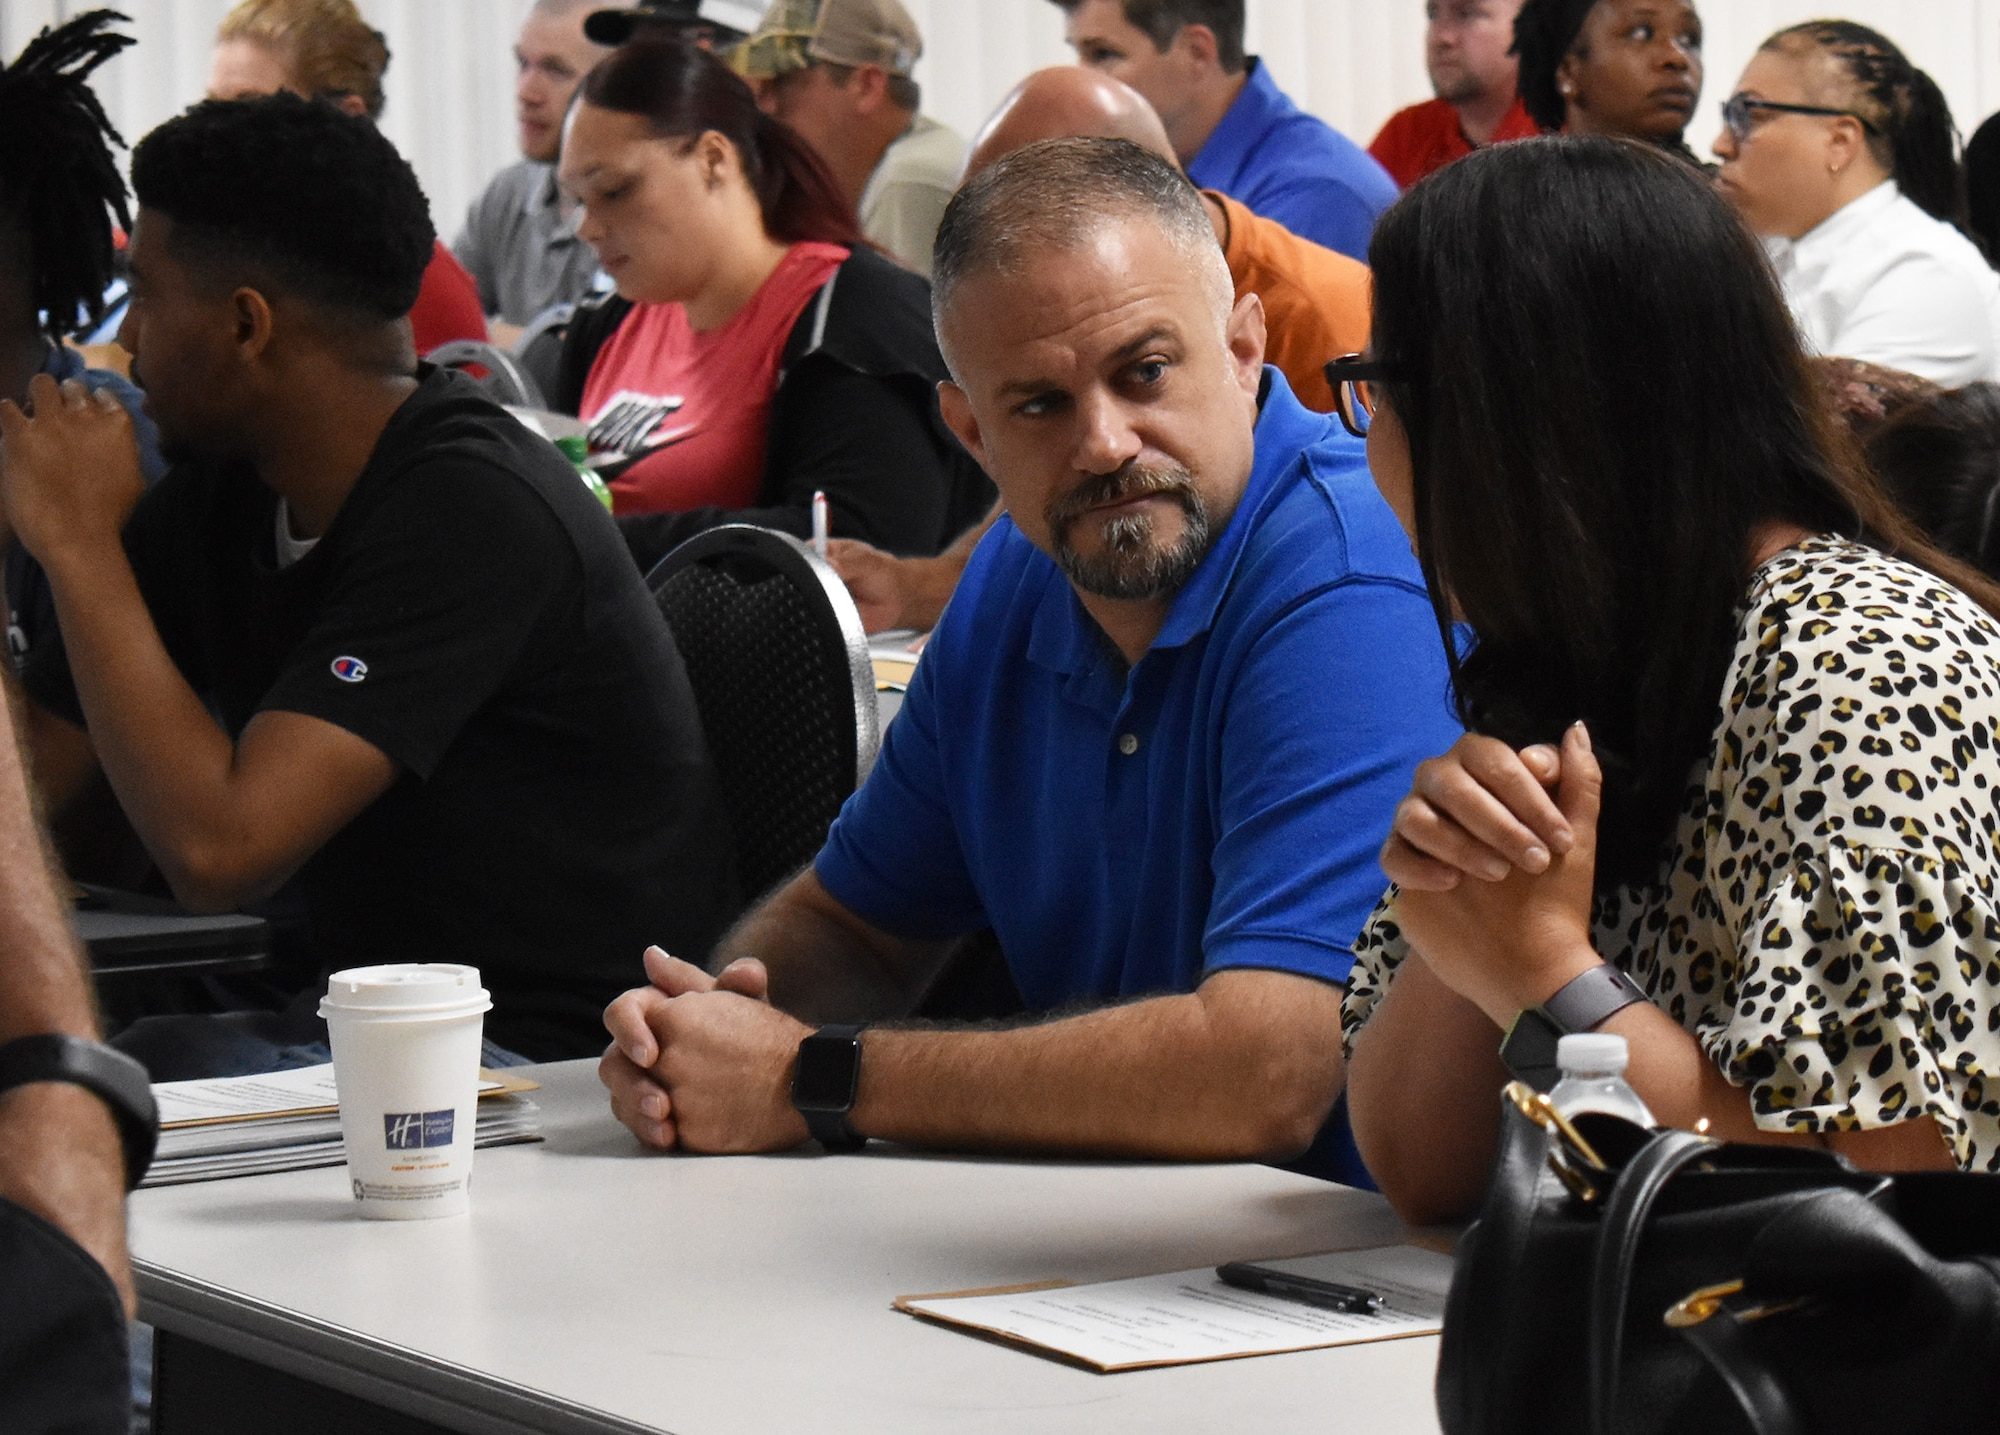 Andrea Tosolini, the Warner Robins Air Logistics Complex's 1,200th hire of its '1200 in 12' hiring initiative was sworn in June 24, 2019. The Florida native and 21-year Air Force veteran said getting the job was like winning the lottery. The Warner Robins Air Logistics Complex announced its initiative during a press conference Aug. 15, 2018. The task at hand was to hire 1,200 new workers within 12 months, or by the end of fiscal 2019. At the time 7,200 personnel worked for the complex, providing maintenance and repair for several aircraft and components, as well as F-15 engineering. (U.S. Air Force photo by Ed Aspera)